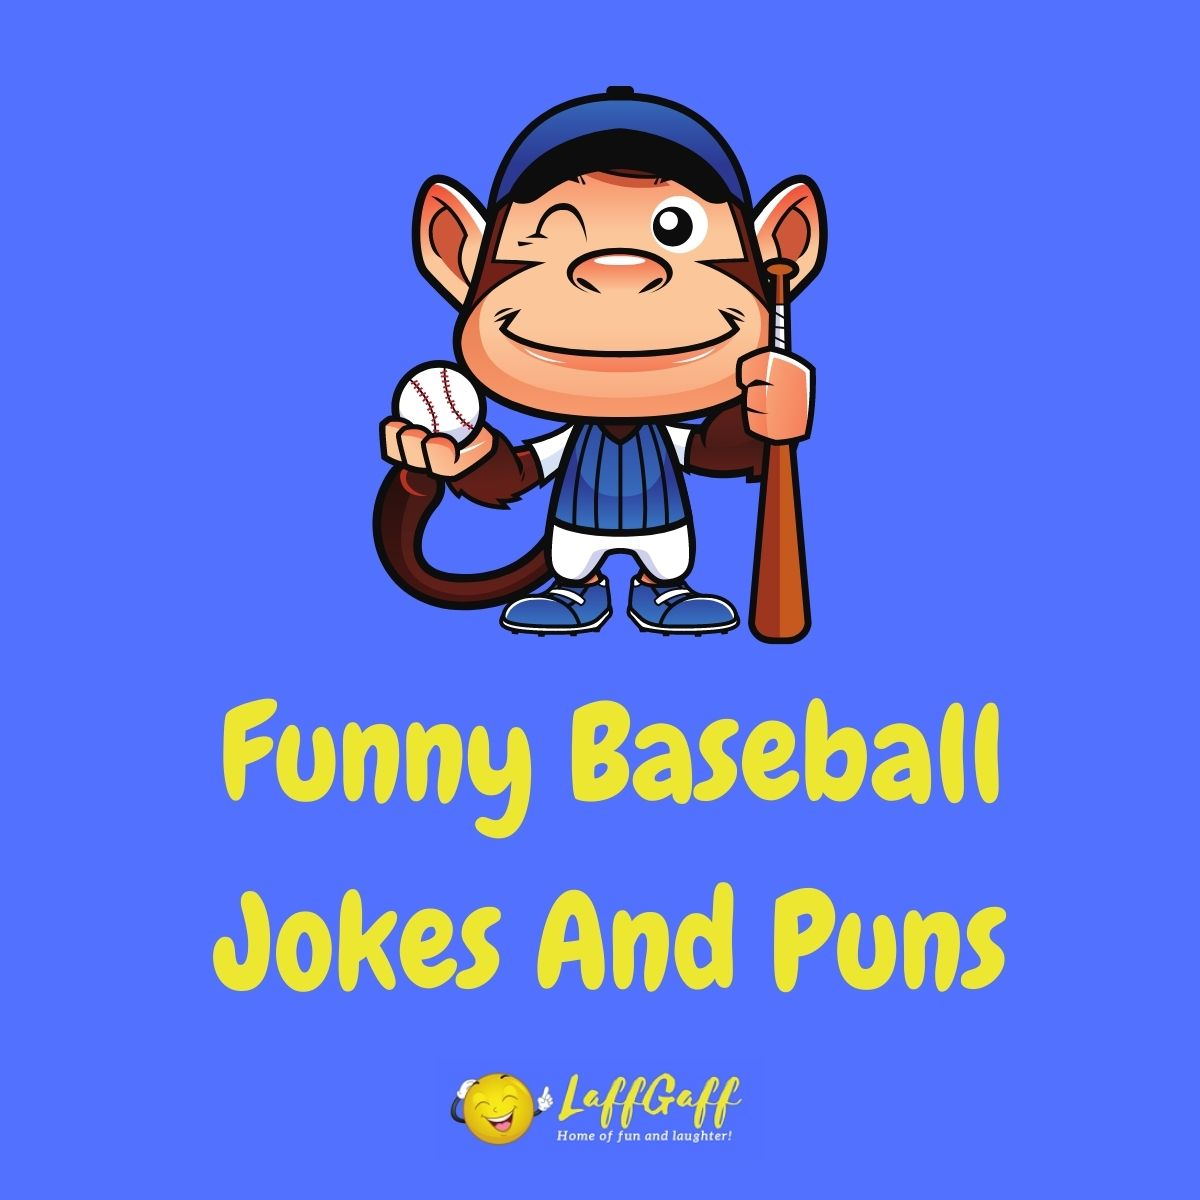 Featured image for a page of funny baseball jokes and puns.